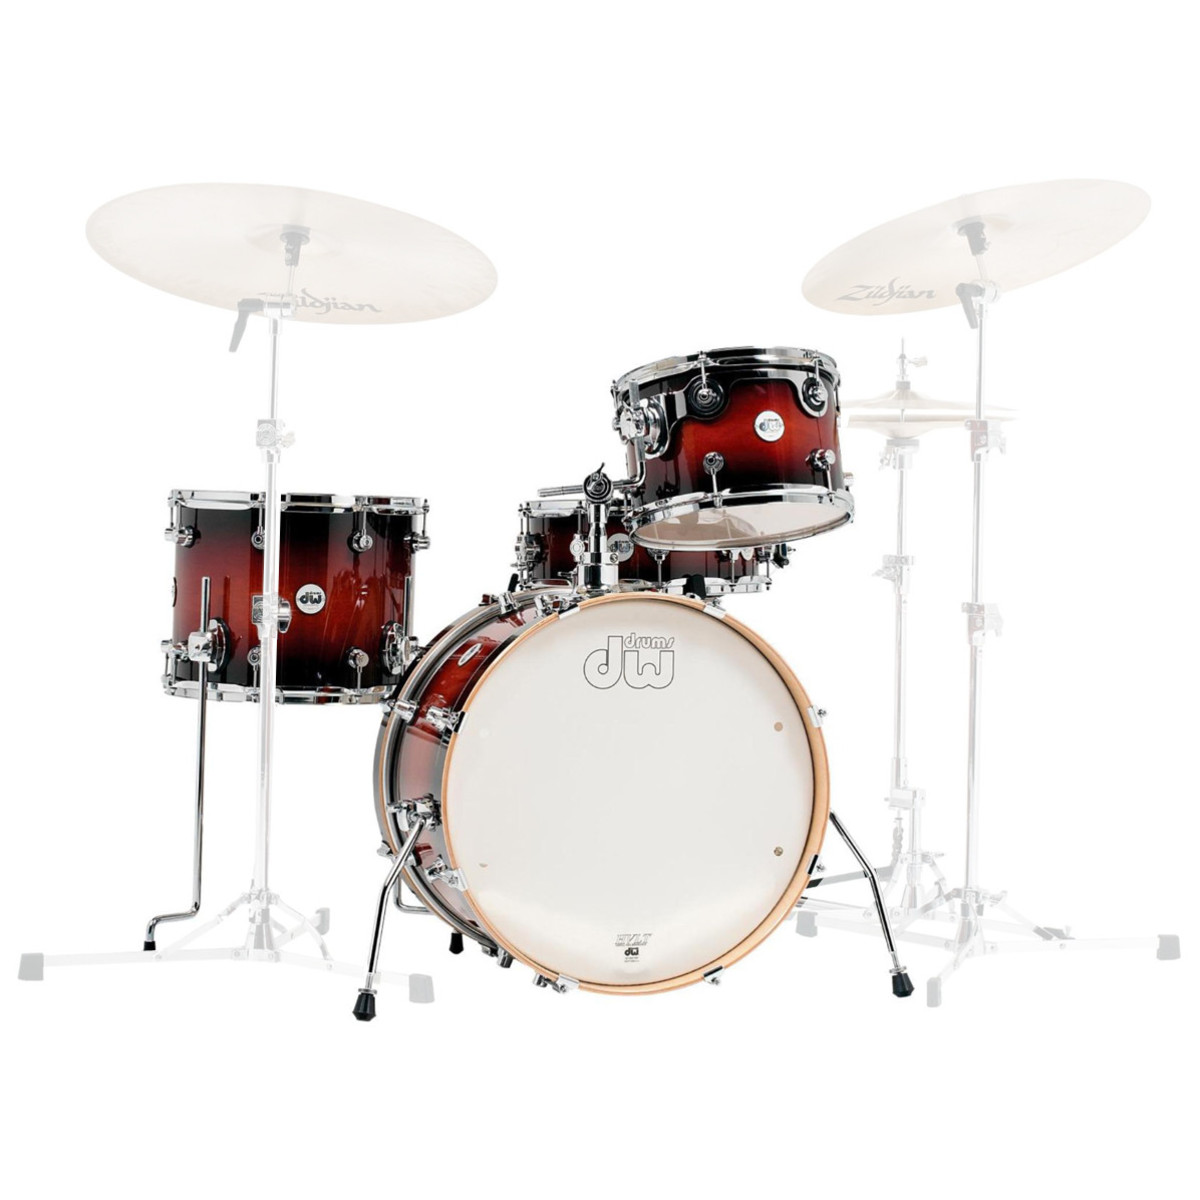 dw drums design frequent flyer 20 39 39 shell pack gloss tobacco burst at. Black Bedroom Furniture Sets. Home Design Ideas